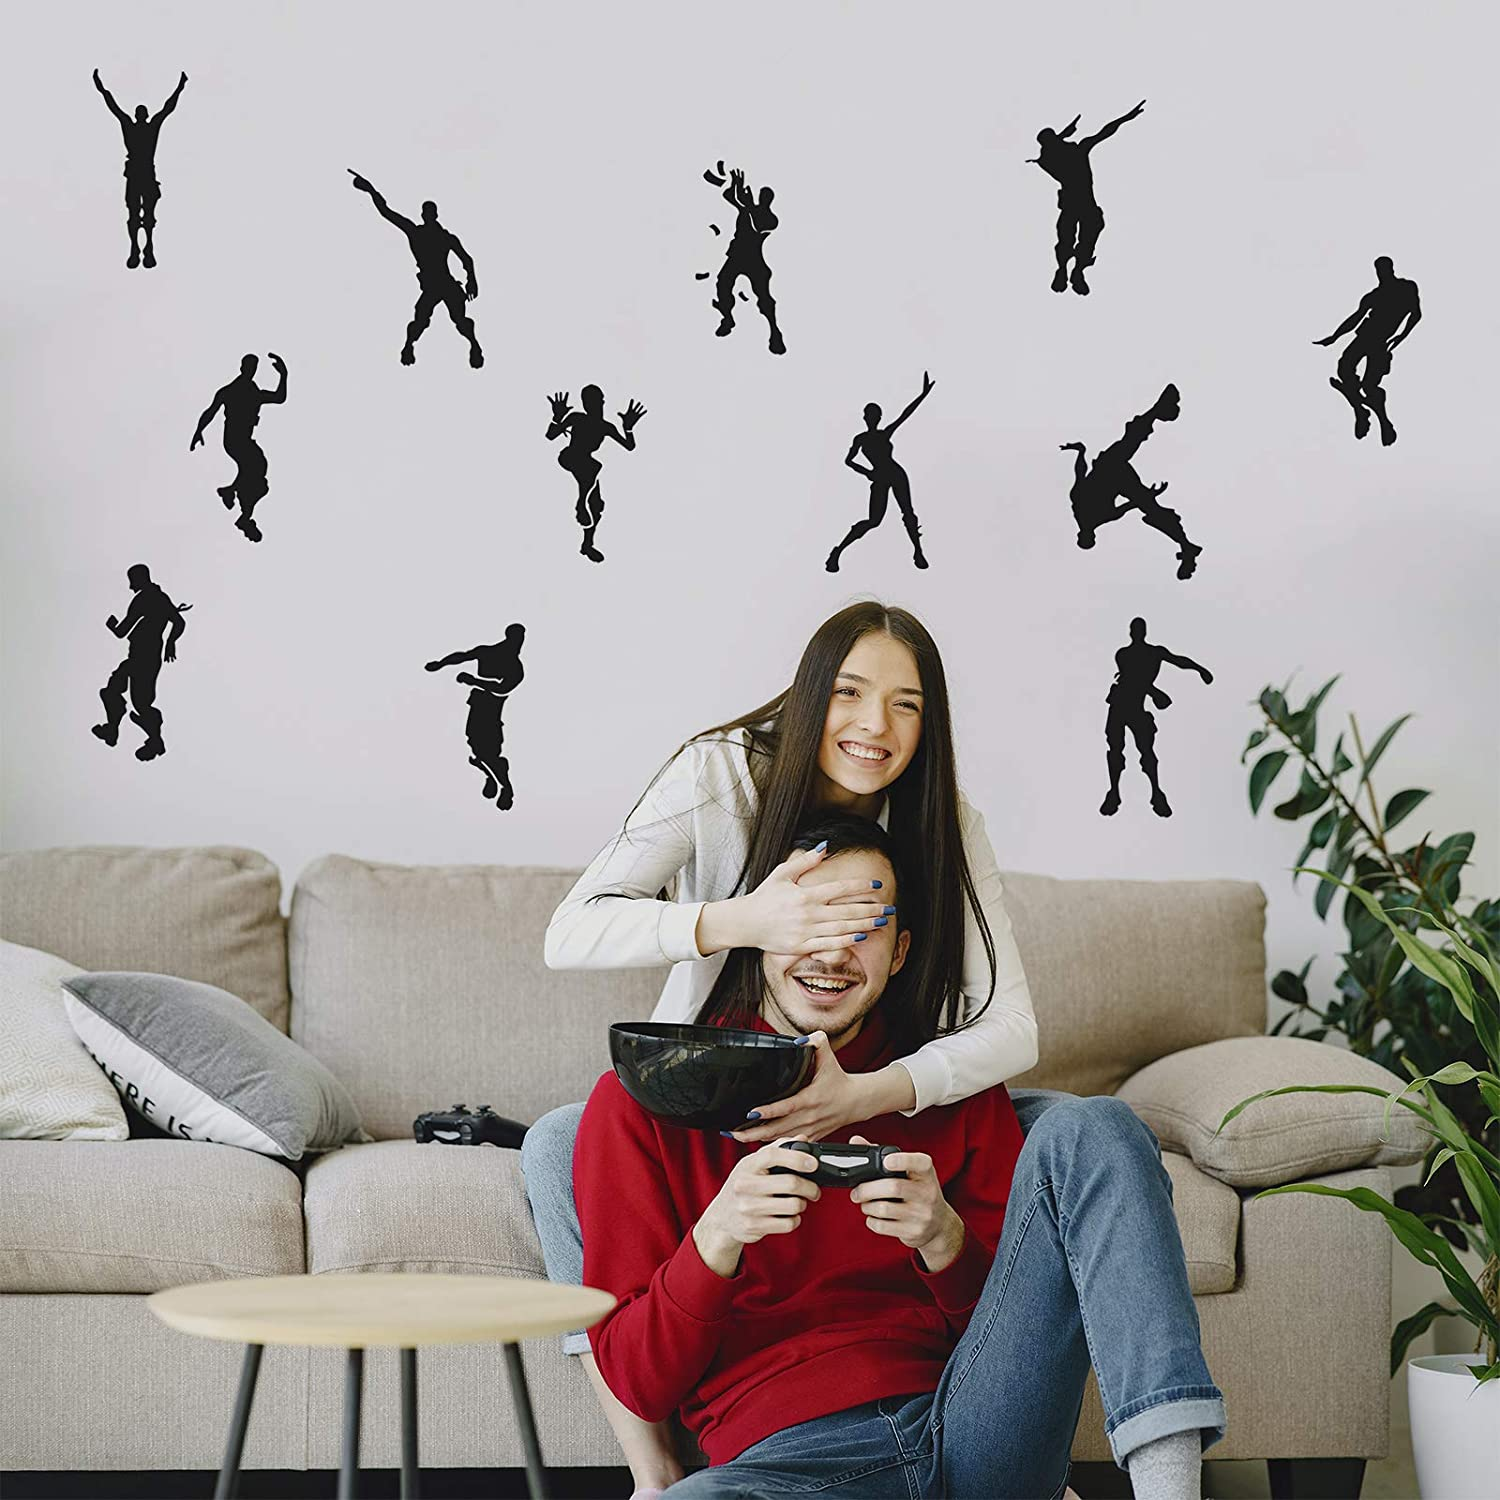 Gamer Wall Decals-Poster Decals Floss Dancing-Gamer Decor for Boys Room, Removable Wall Vinyl Decal Game Stickers for Nursery Kids Room (23.6 x 21.6 in) 10